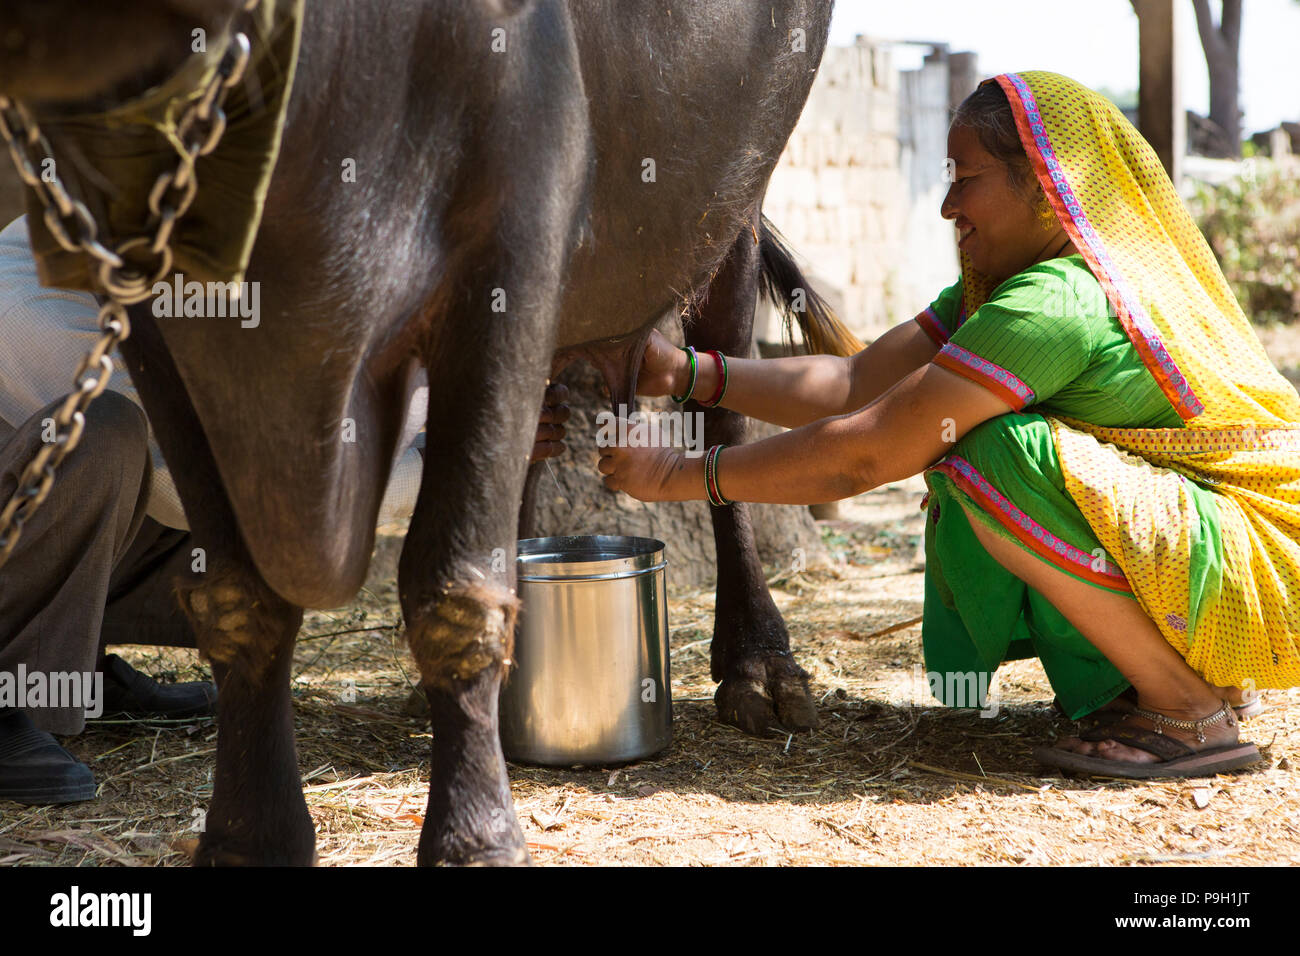 A woman milking their cow on her farm in Ahmedabad, India. - Stock Image